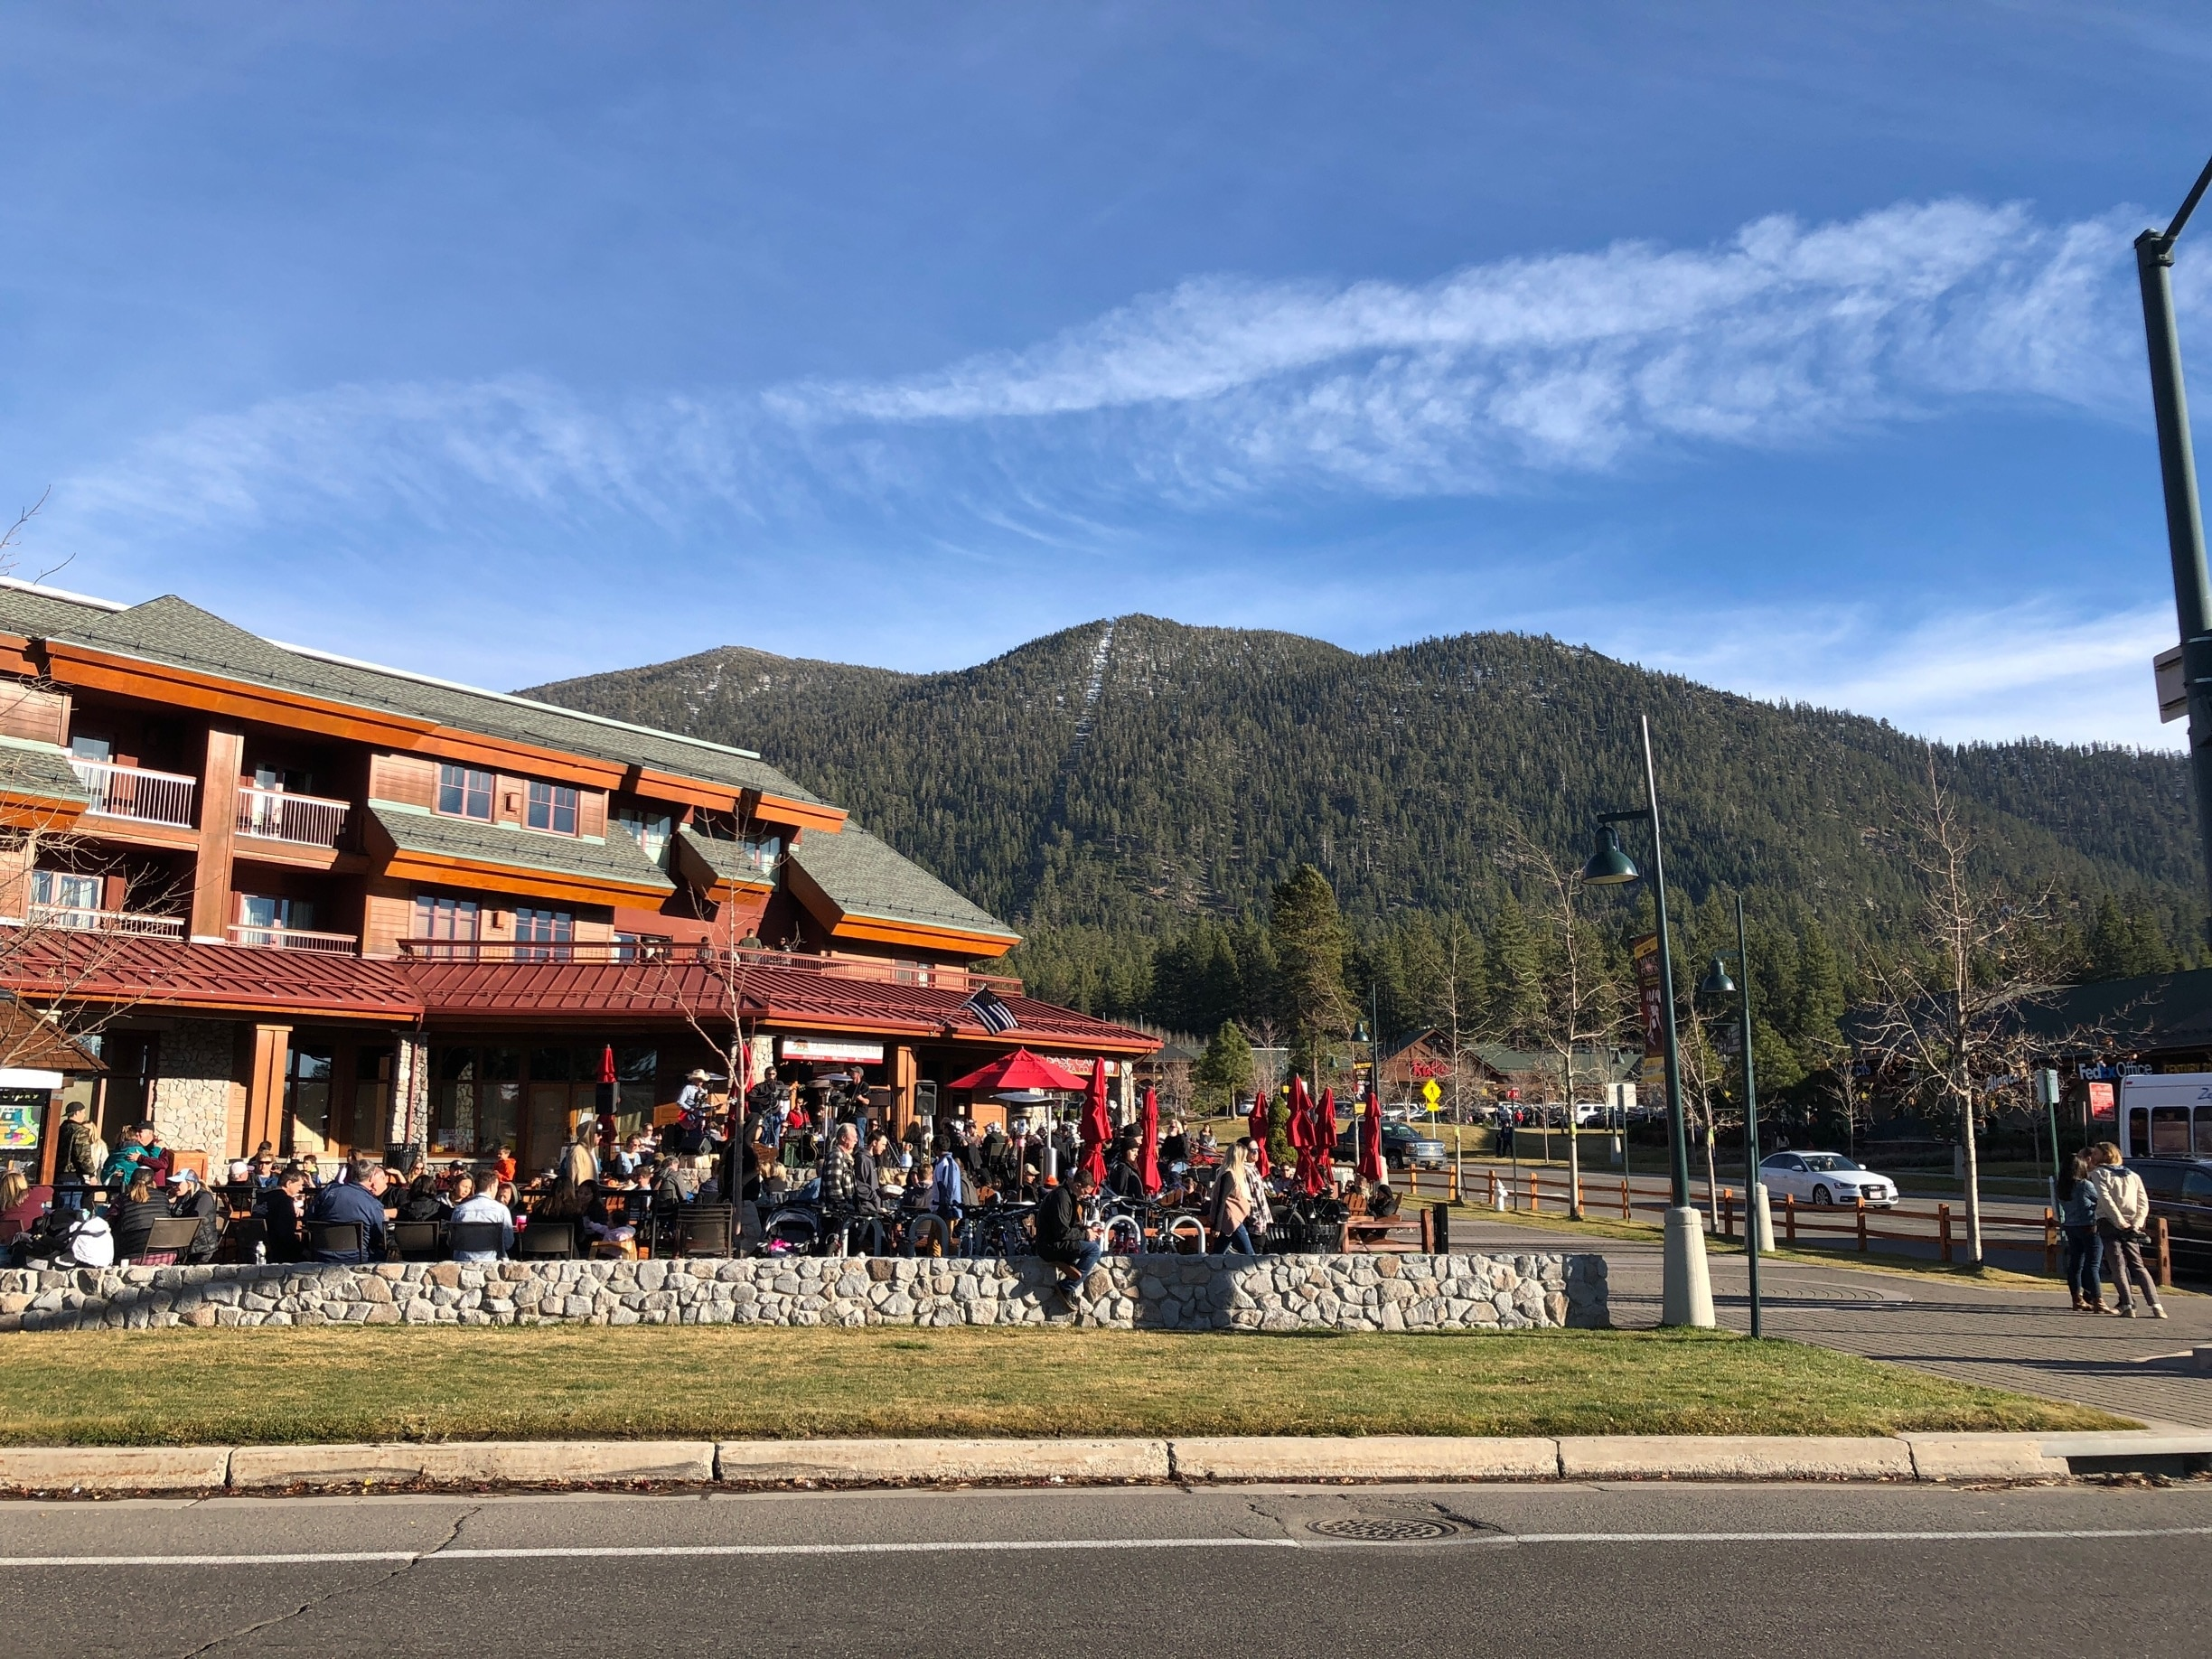 The Shops at Heavenly Village, South Lake Tahoe, California, United States of America